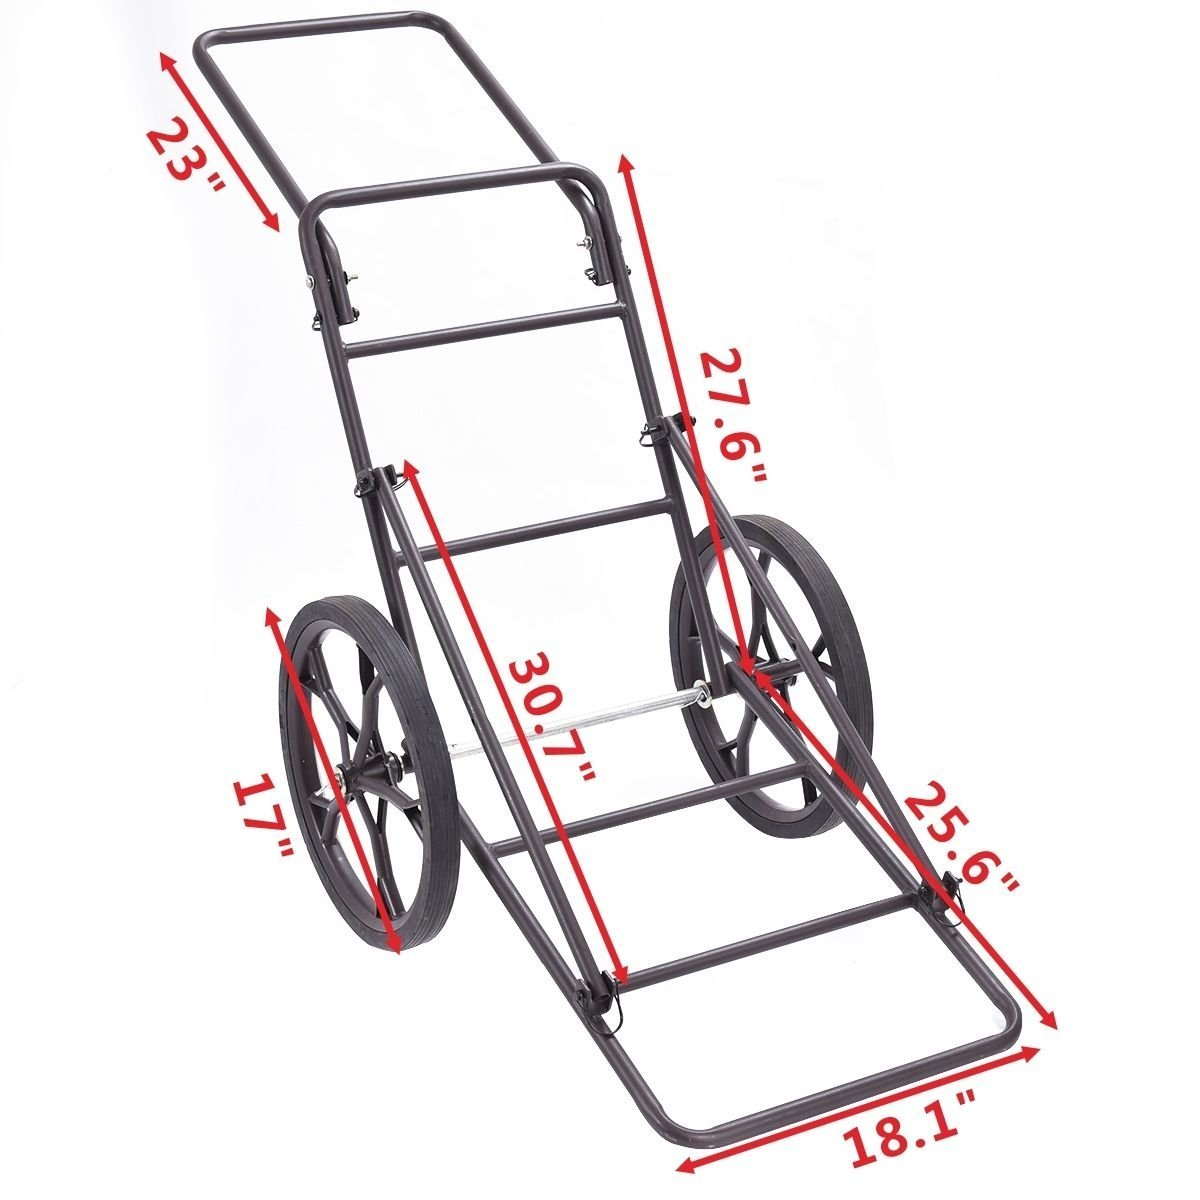 Goplus Folding Deer Game Cart Larger Capacity 500lbs Hauler Utility Gear Dolly Cart Hunting Accessories by Goplus (Image #3)